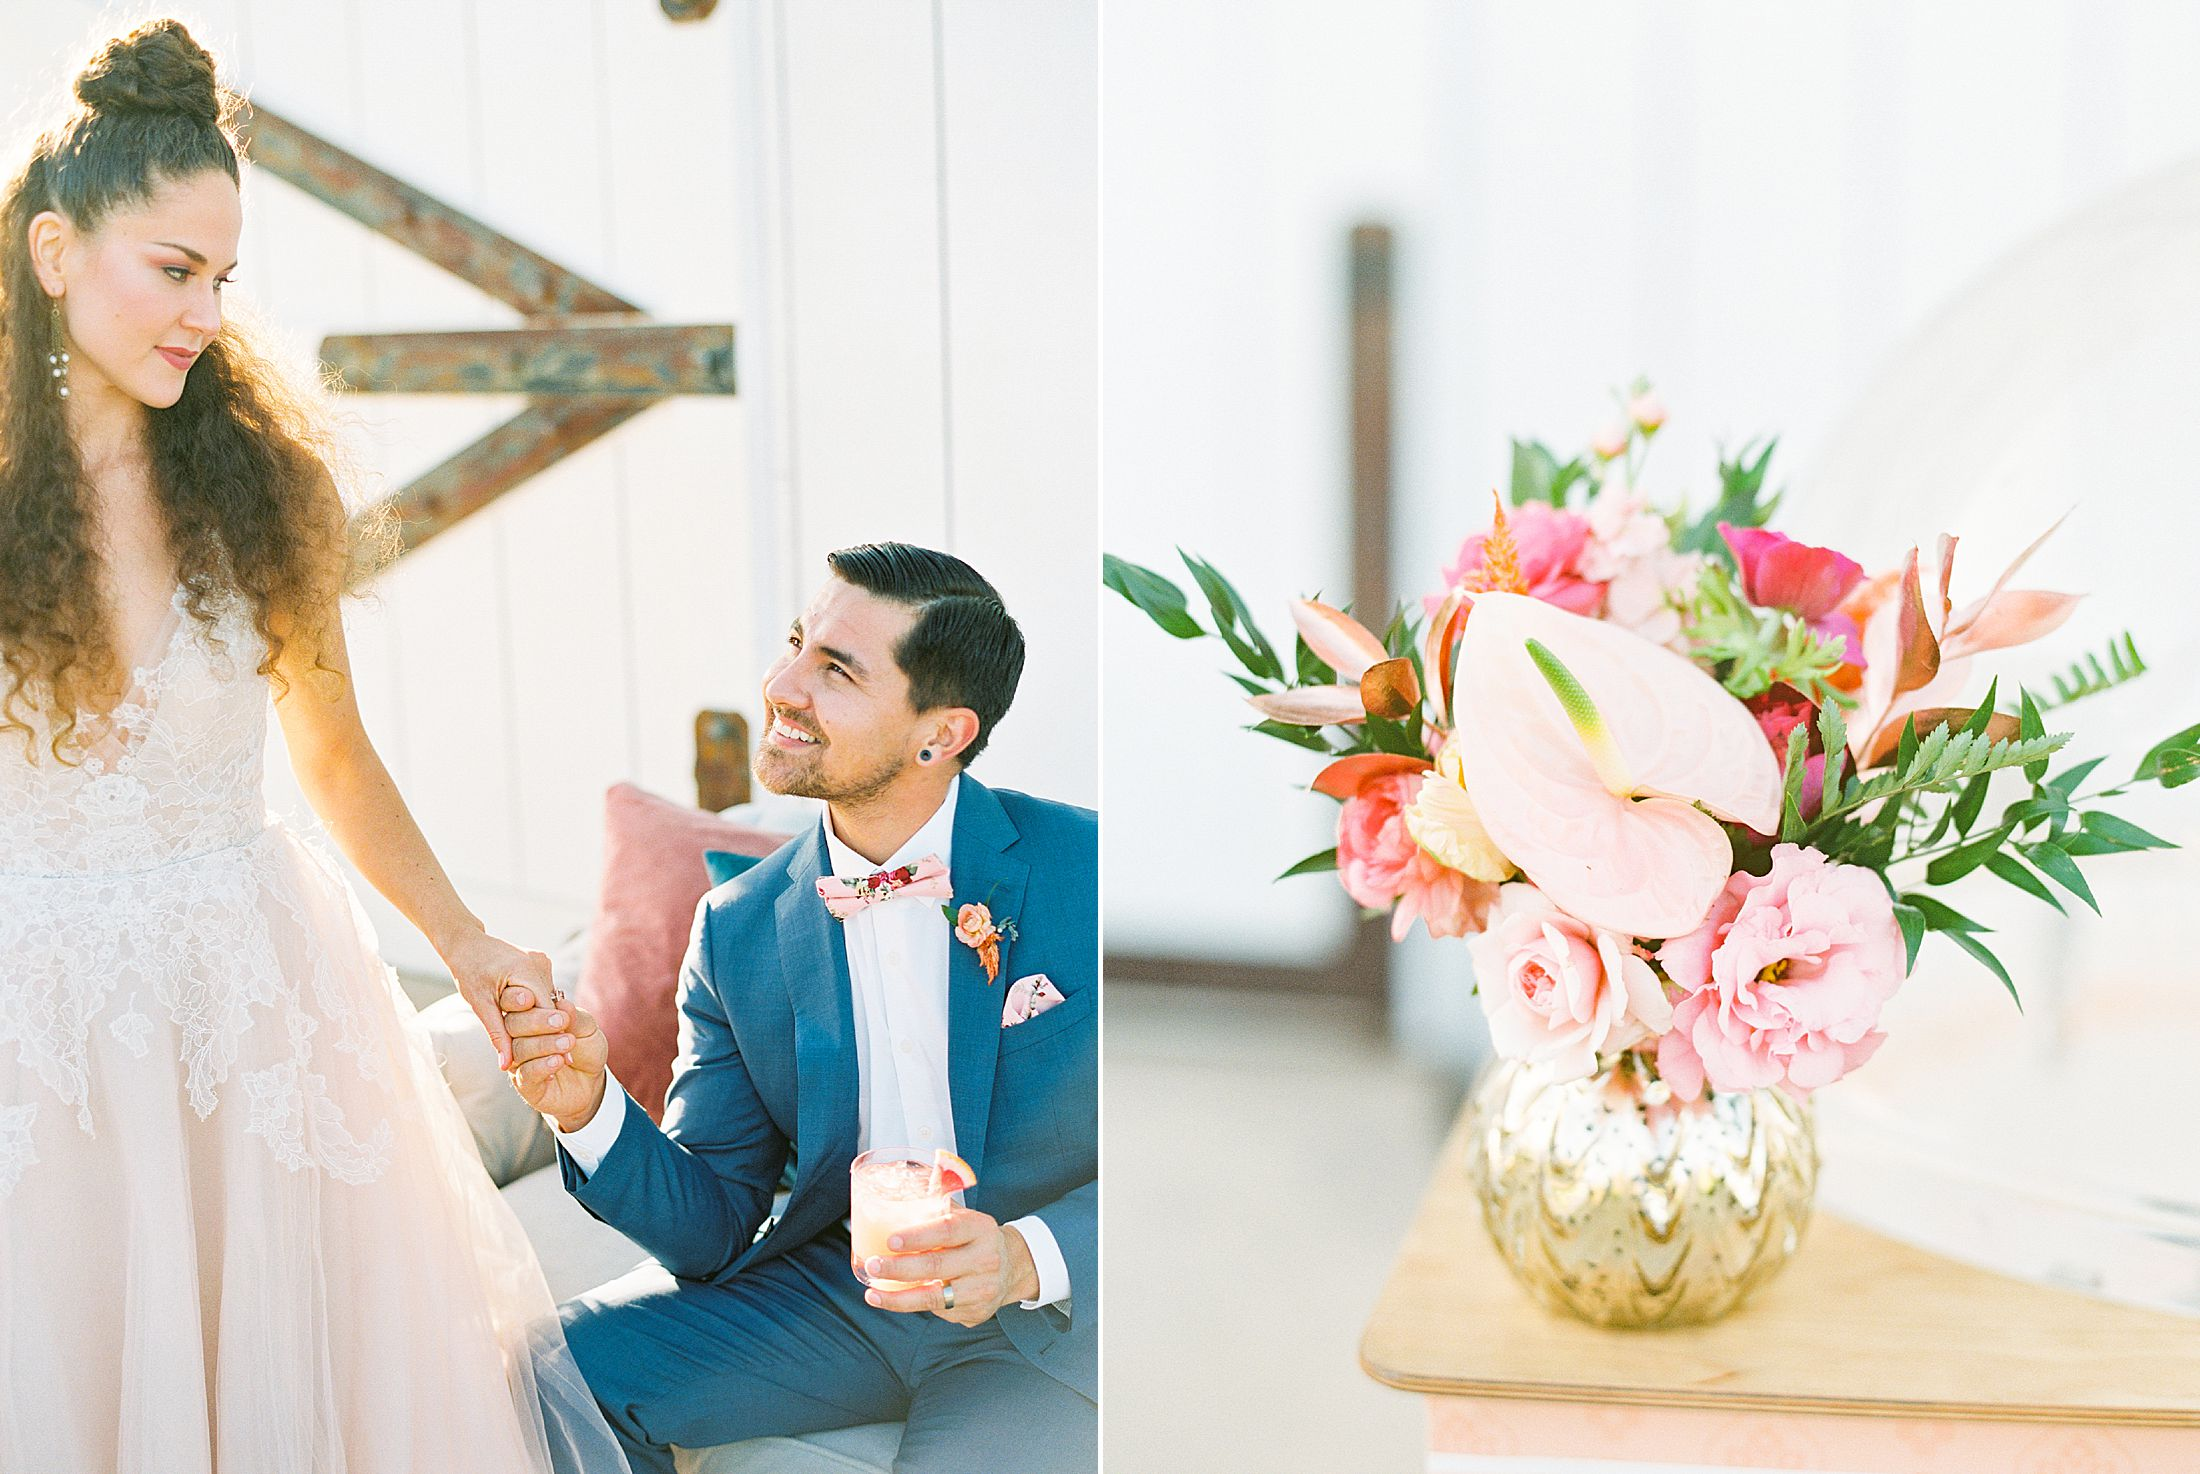 White Barn Edna Valley Wedding Inspiration - San Luis Obispo Wedding - Featured on Green Wedding Shoes - Ashley Baumgartner - FM Events SLO - SLO Wedding Photographer_0075.jpg